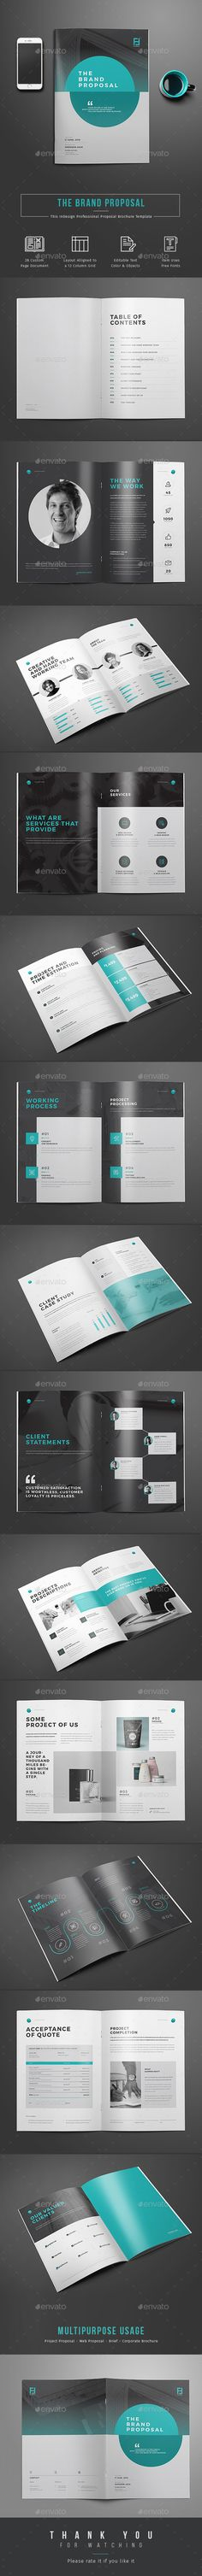 Proposal 30 Pages Proposal Template InDesign INDD